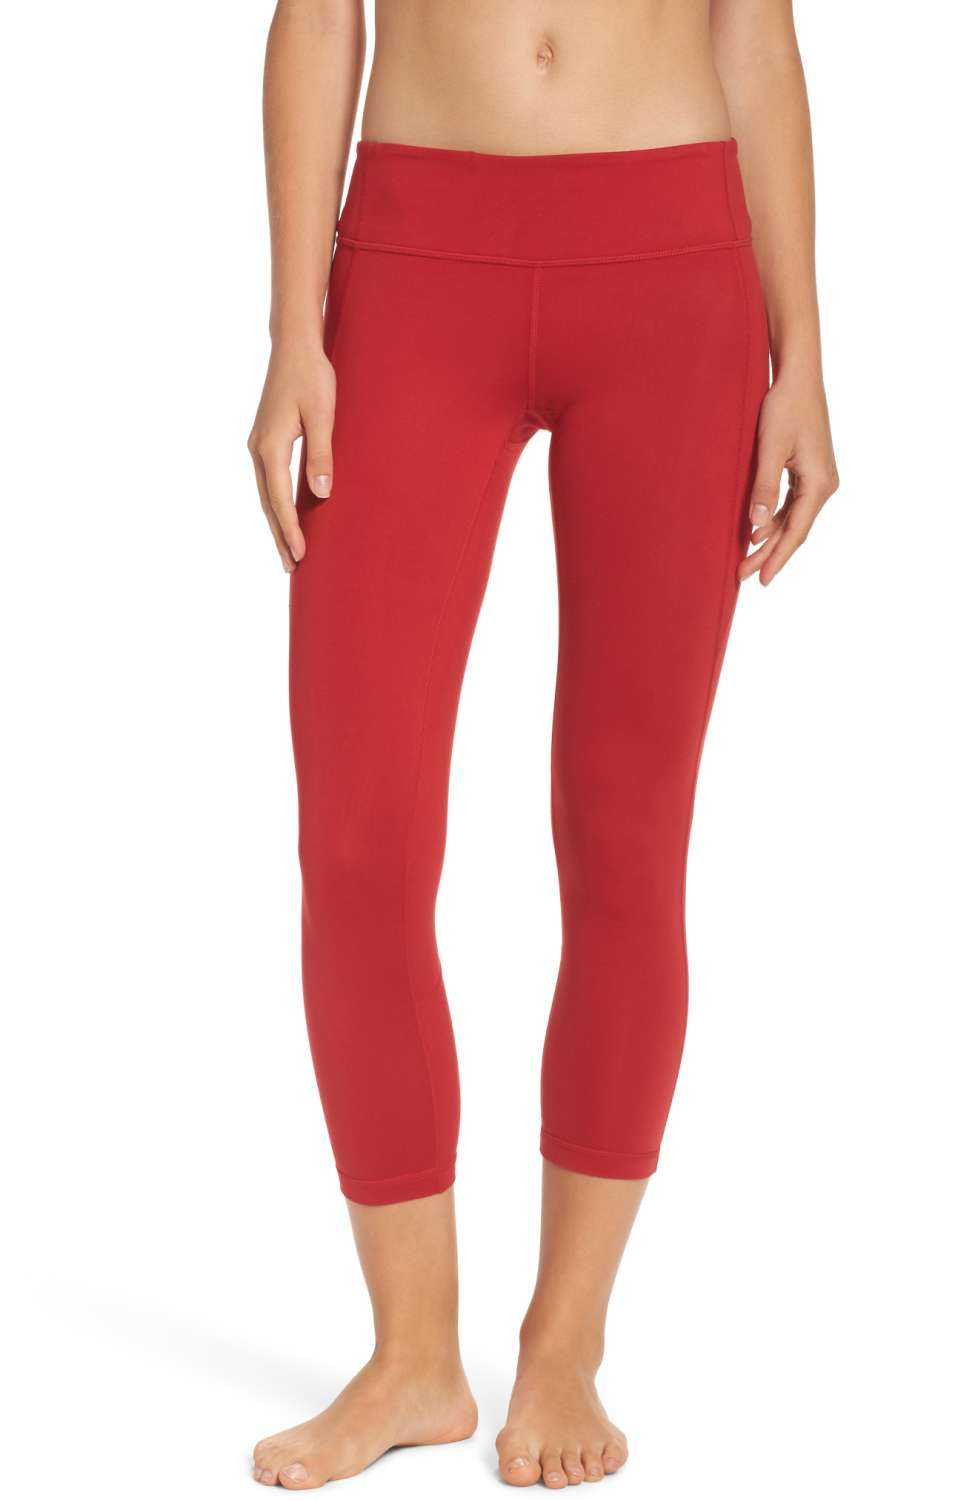 leggings red.jpg